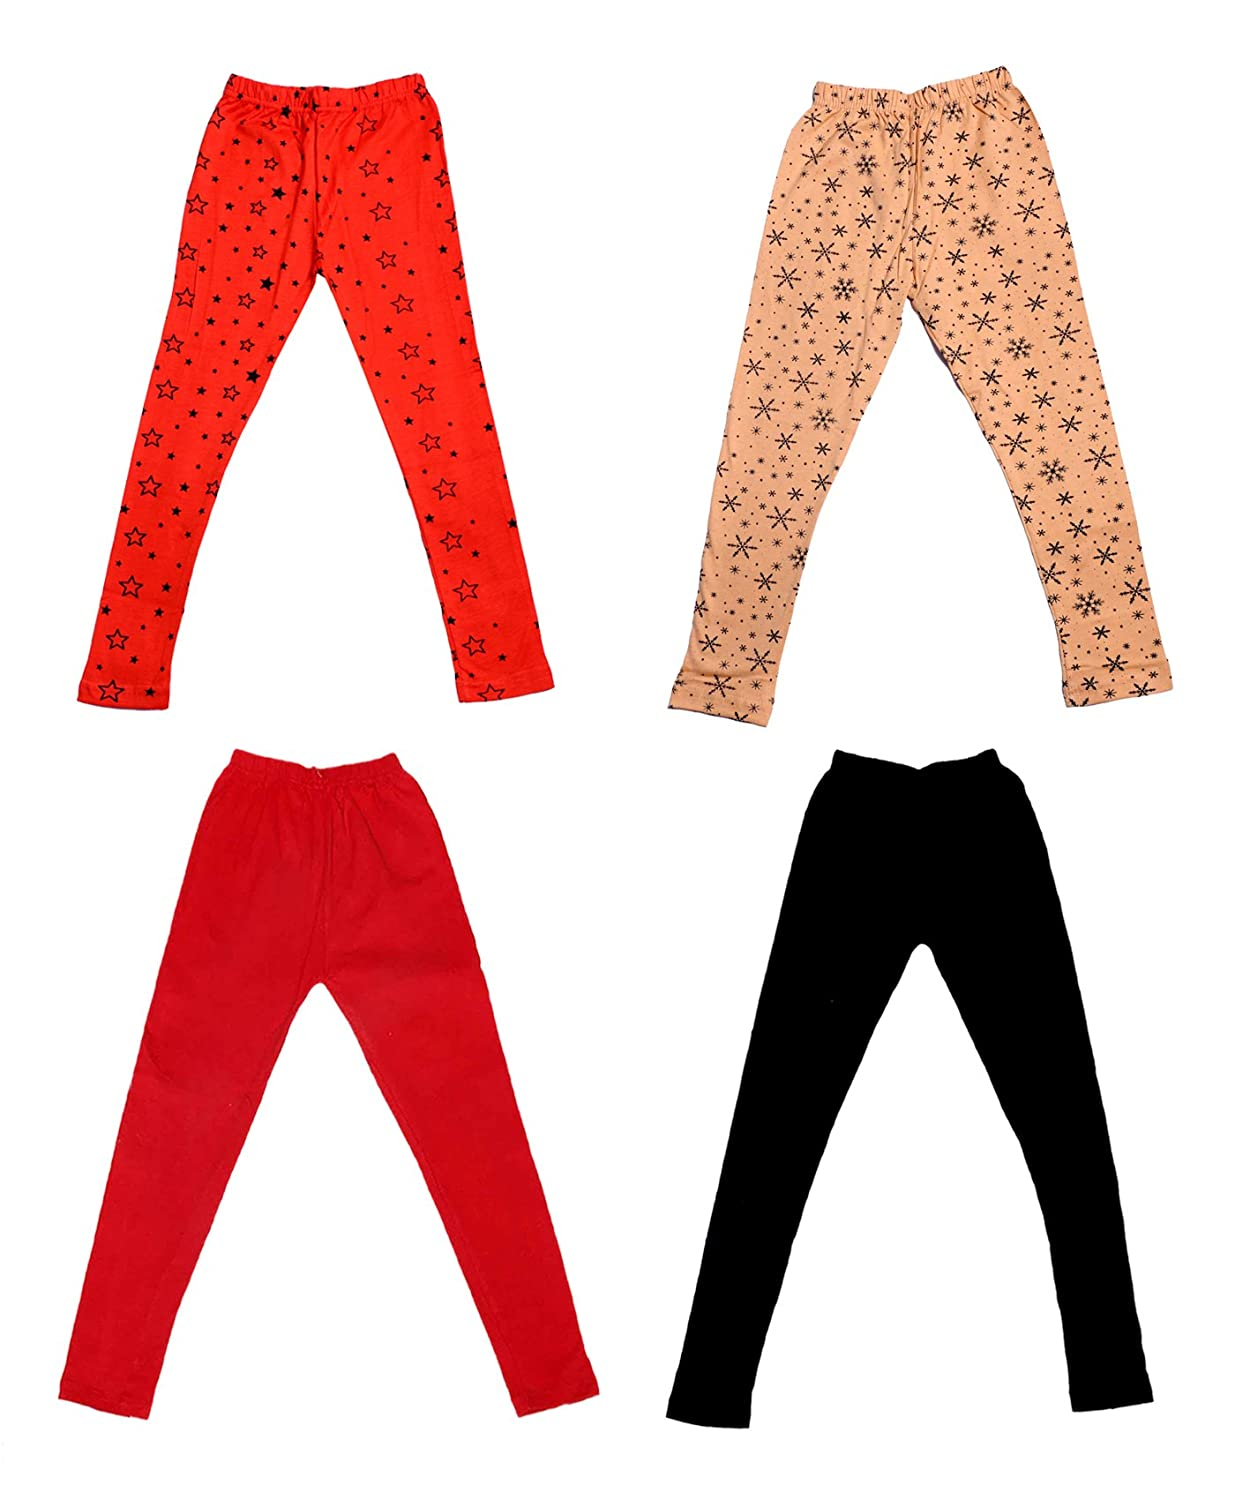 /_Multicolor/_Size-13-14 Years/_71404051619-IW-P4-36 Indistar Girls 2 Cotton Solid Legging Pants and 2 Cotton Printed Legging Pants Pack Of 4